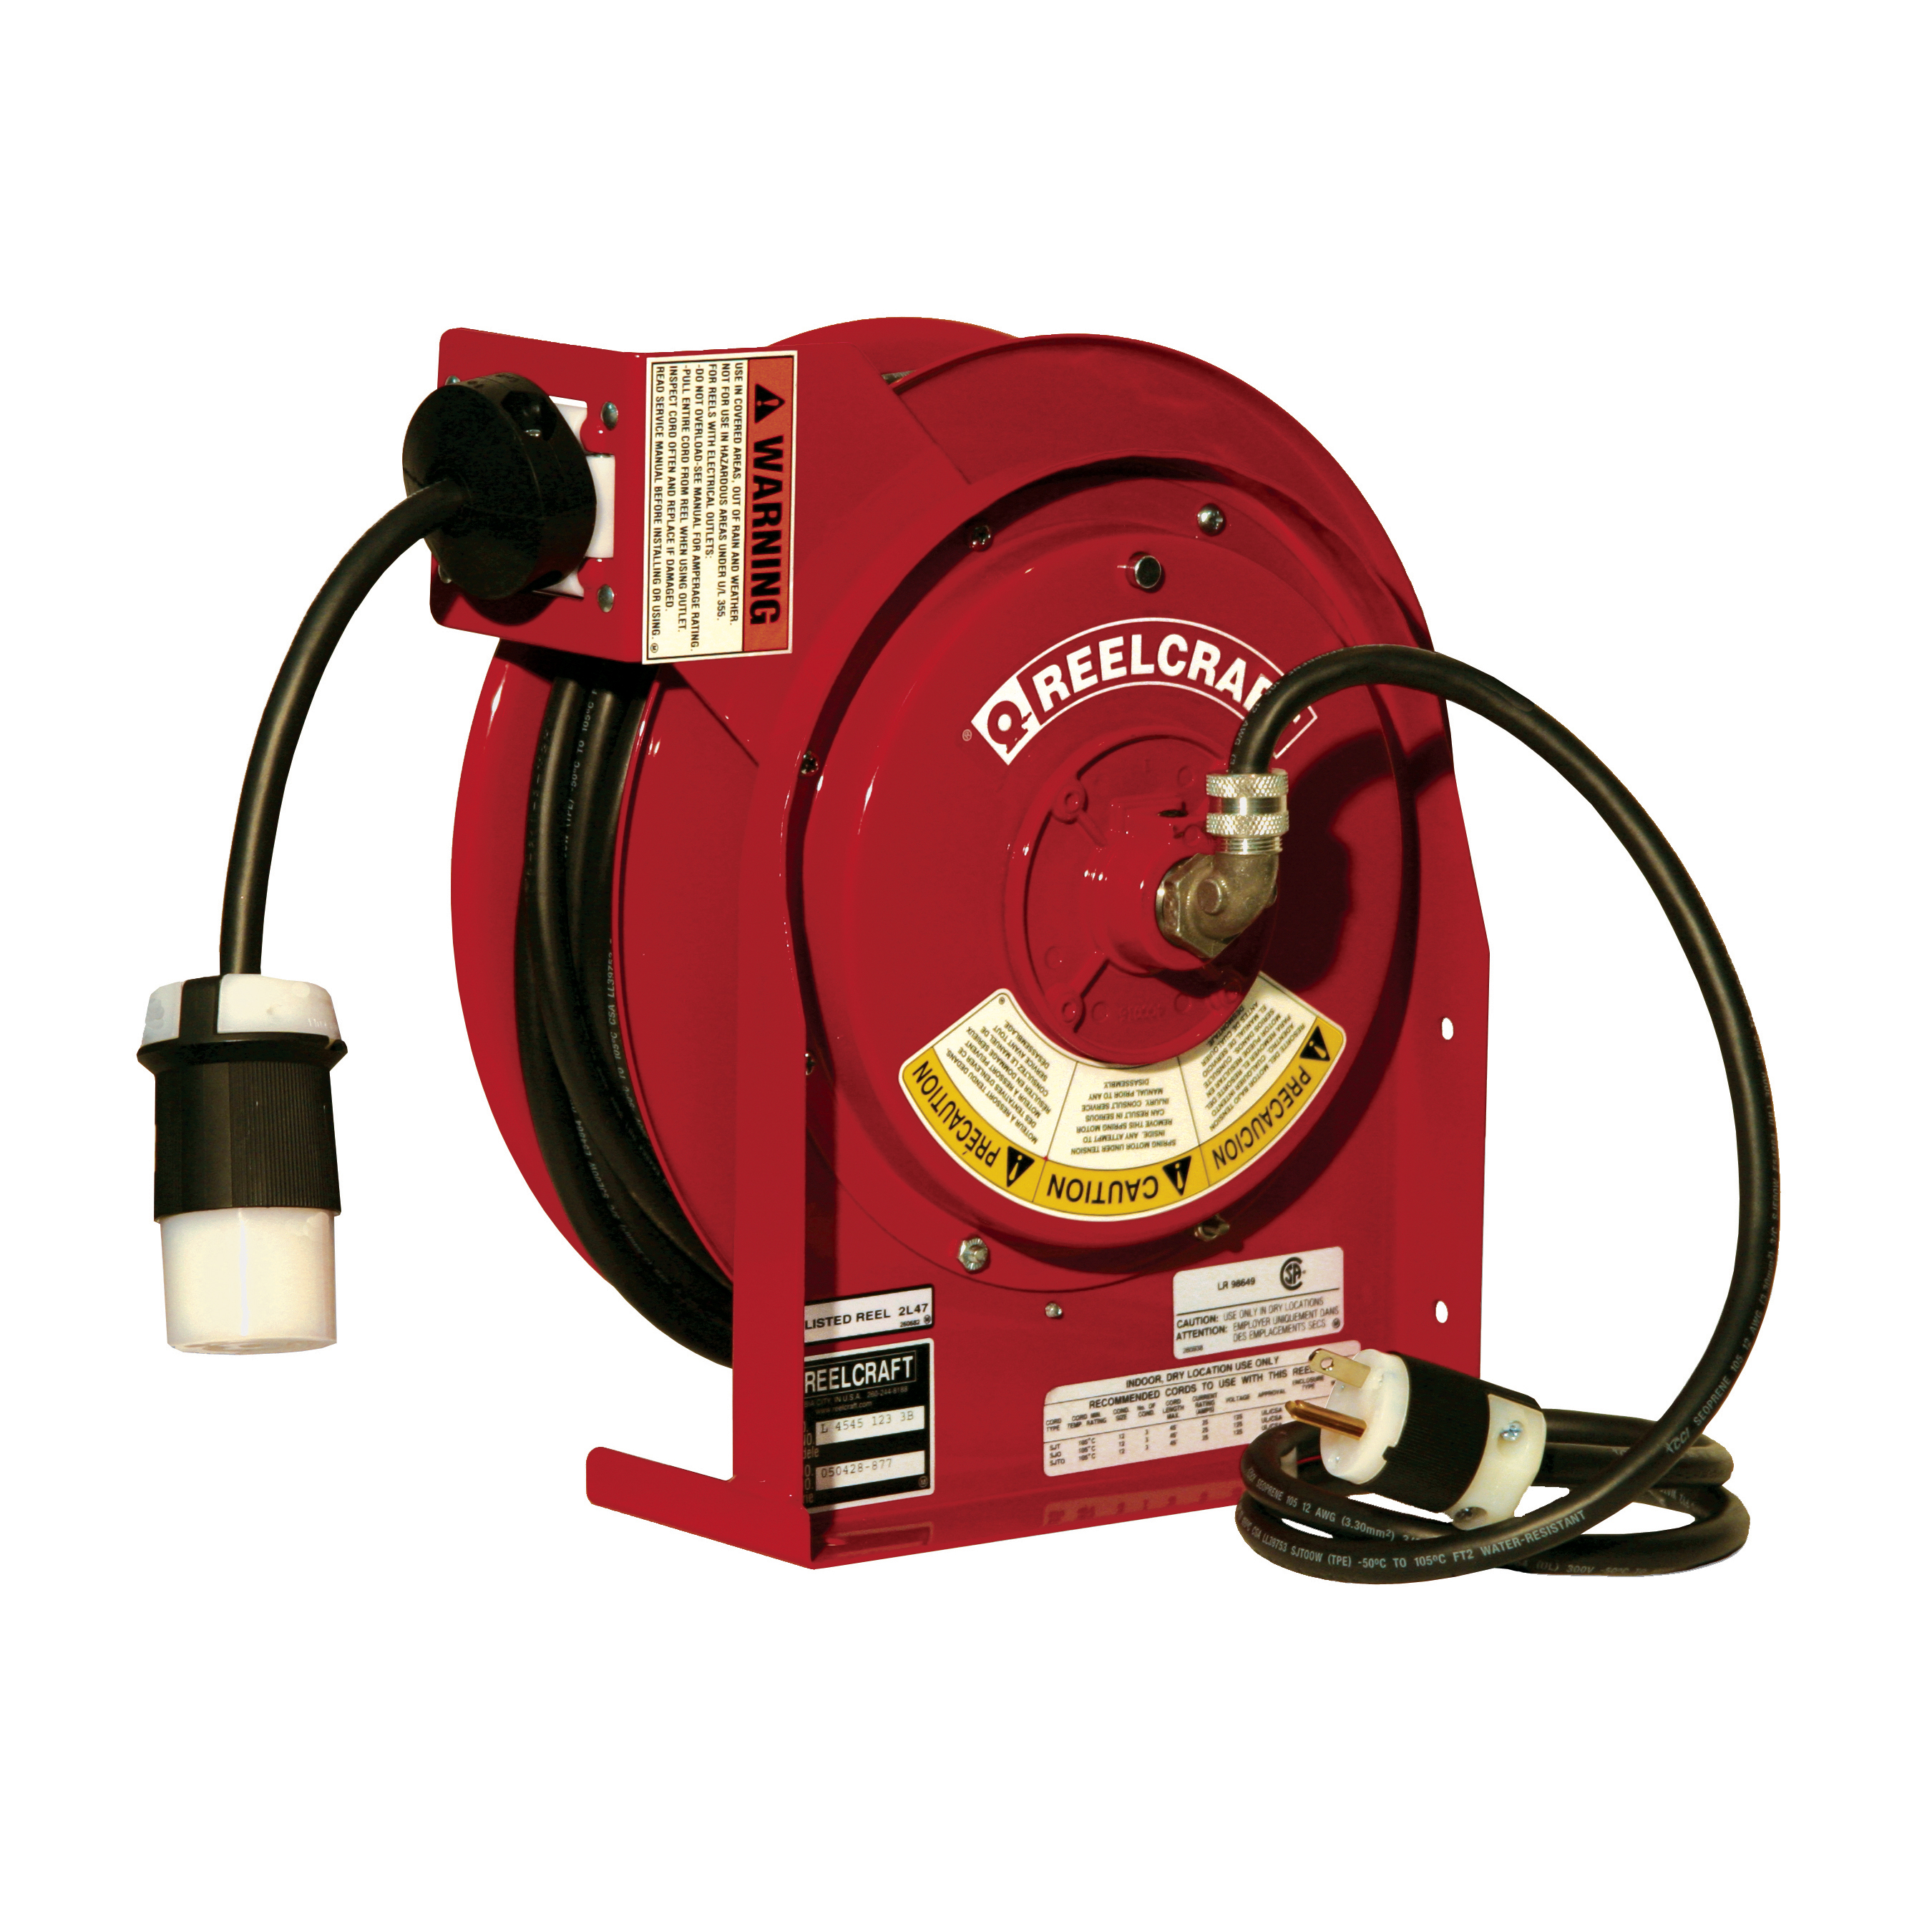 Reelcraft® L 4545 123 3A L 4000 Retractable Power Cord Reel With SJEOOW Cord, 125 VAC, 20 A, 45 ft L Cord, 12 AWG Conductor, 1 Outlets